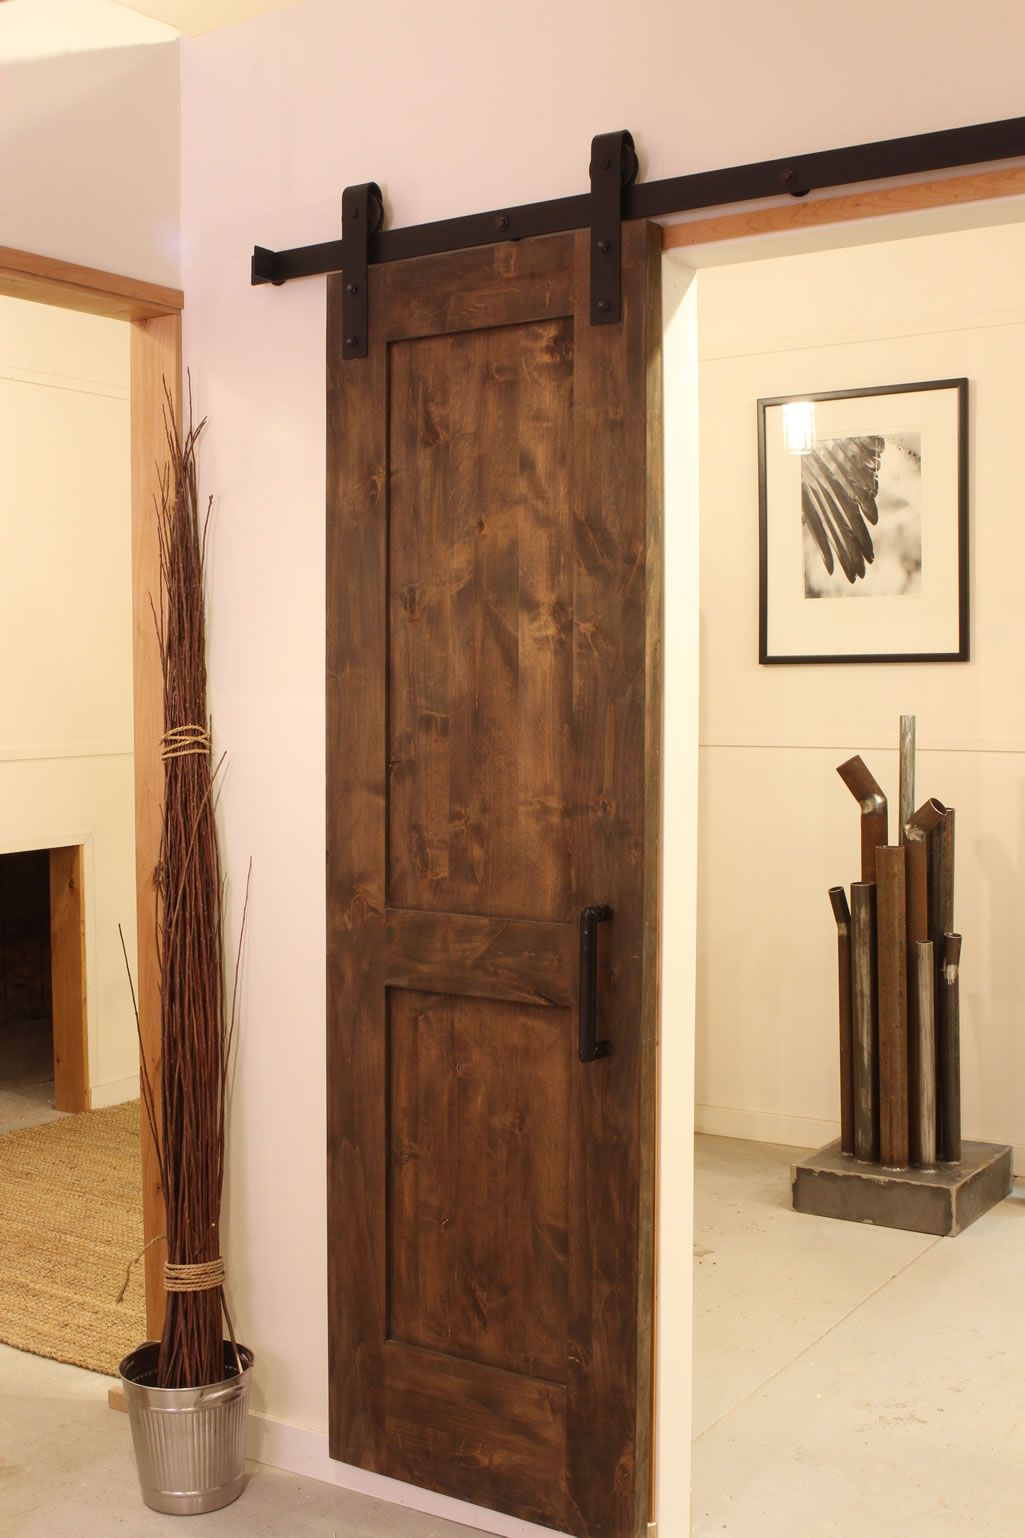 Barn Door Hardware Convert Cur To A Perfect For Small Awkward Es Like At The Top Of Our Basement Stairs